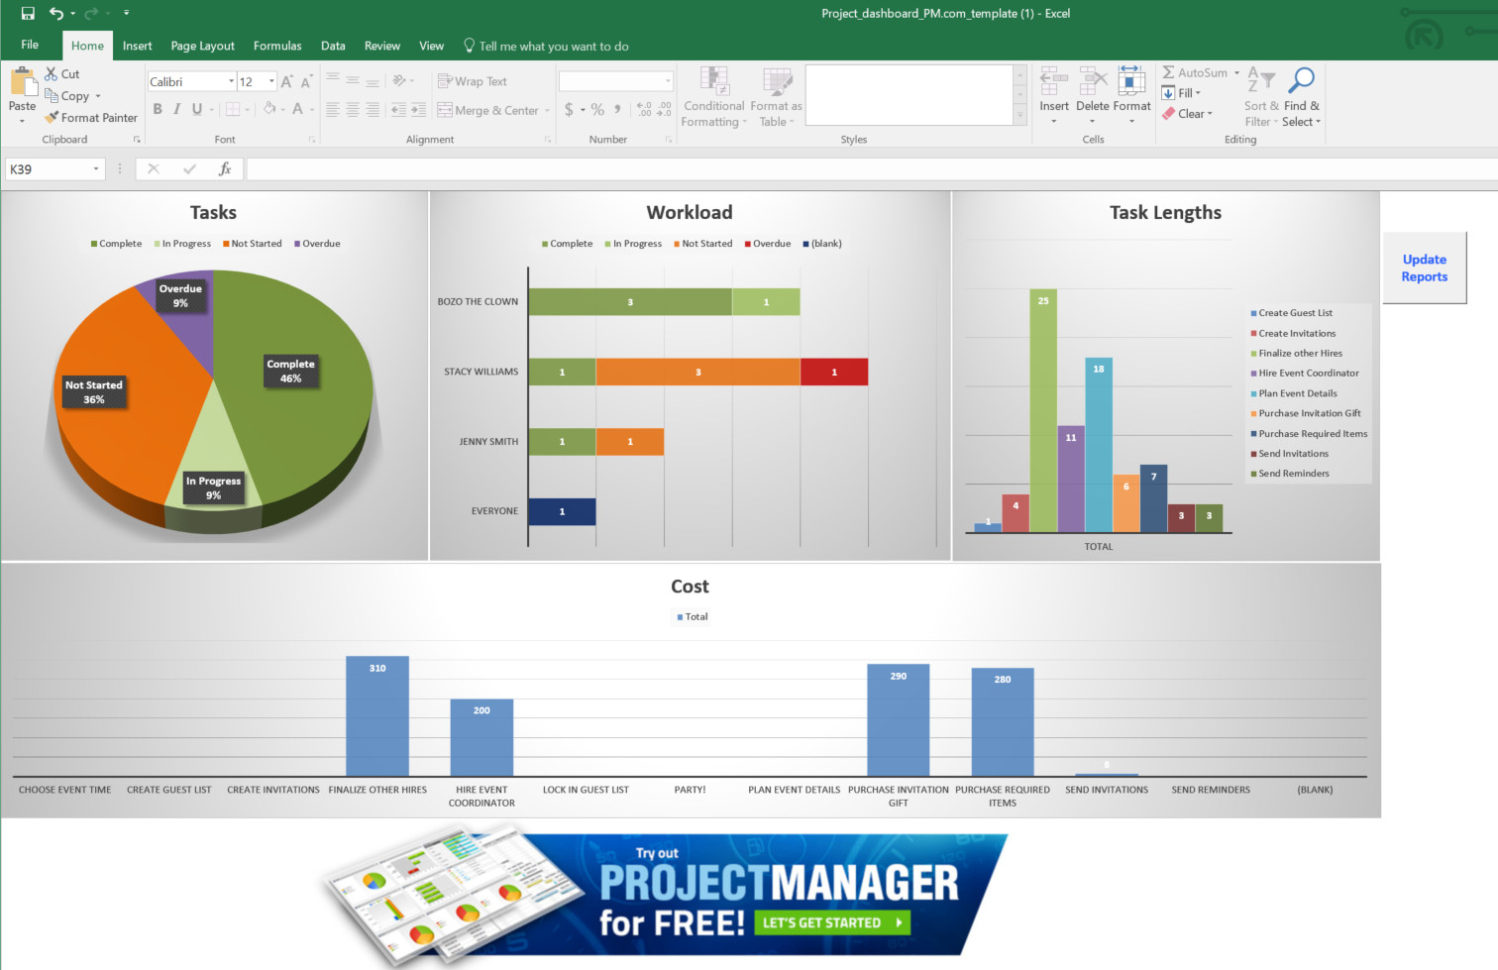 Guide To Excel Project Management   Projectmanager Throughout Project Management Reporting Templates For Status